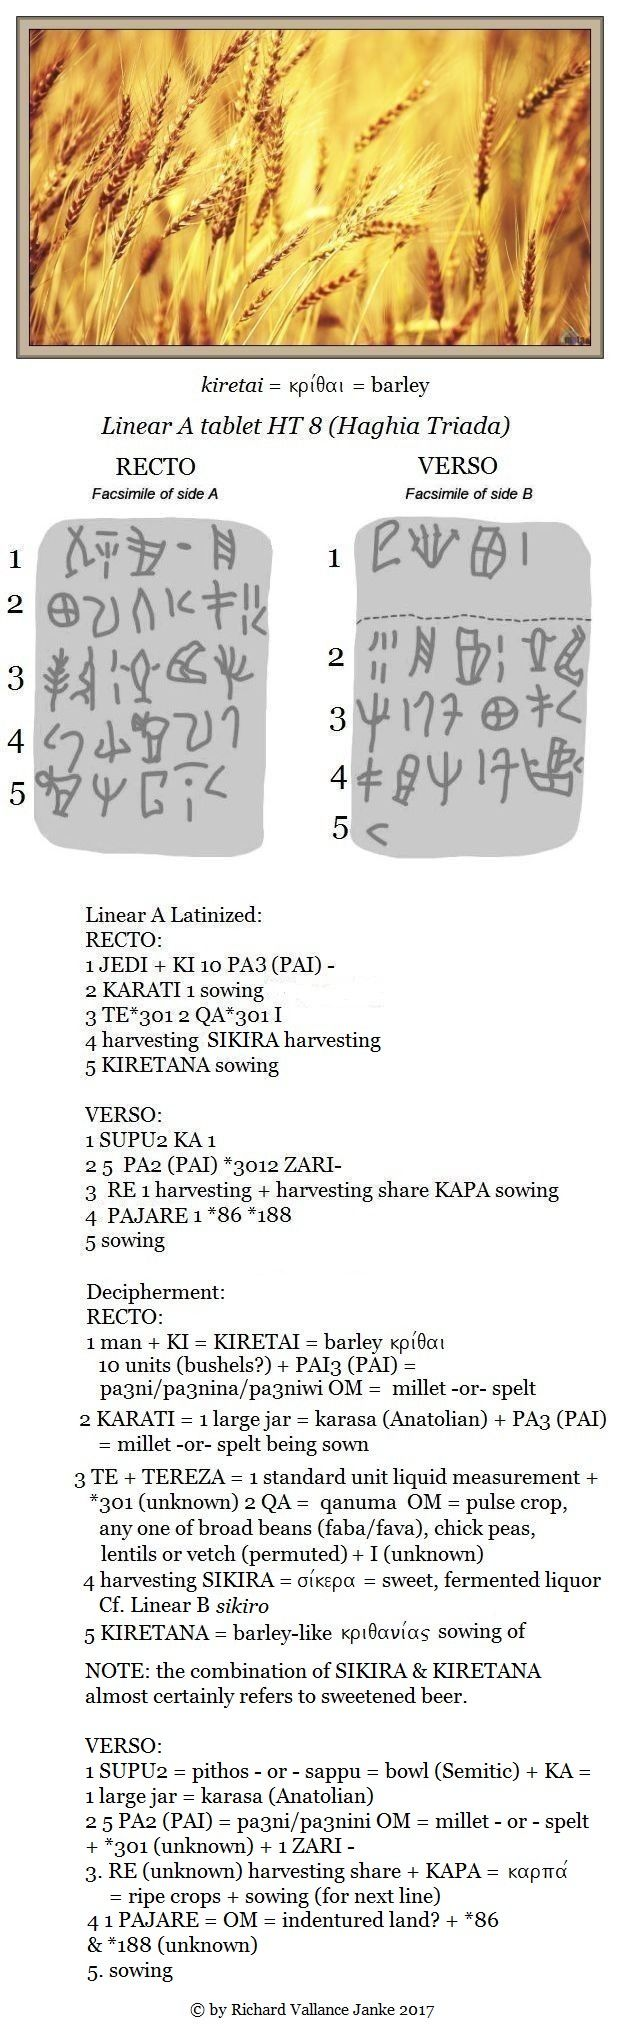 Linear A tablet HT 8